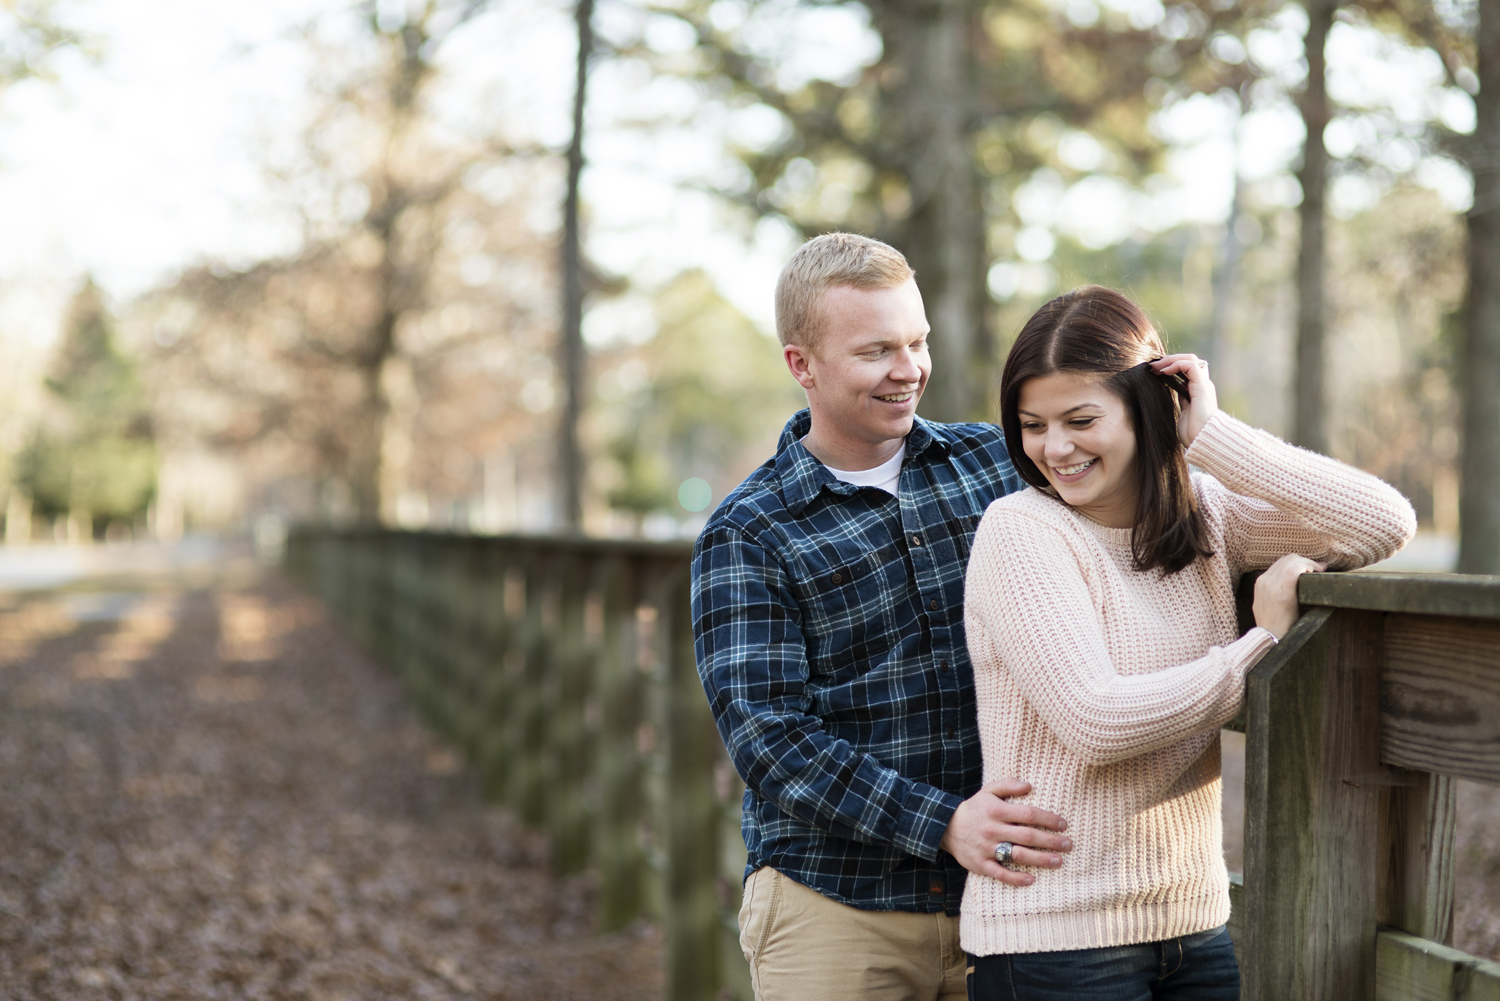 Engagement picture ideas for fun, sweet couples